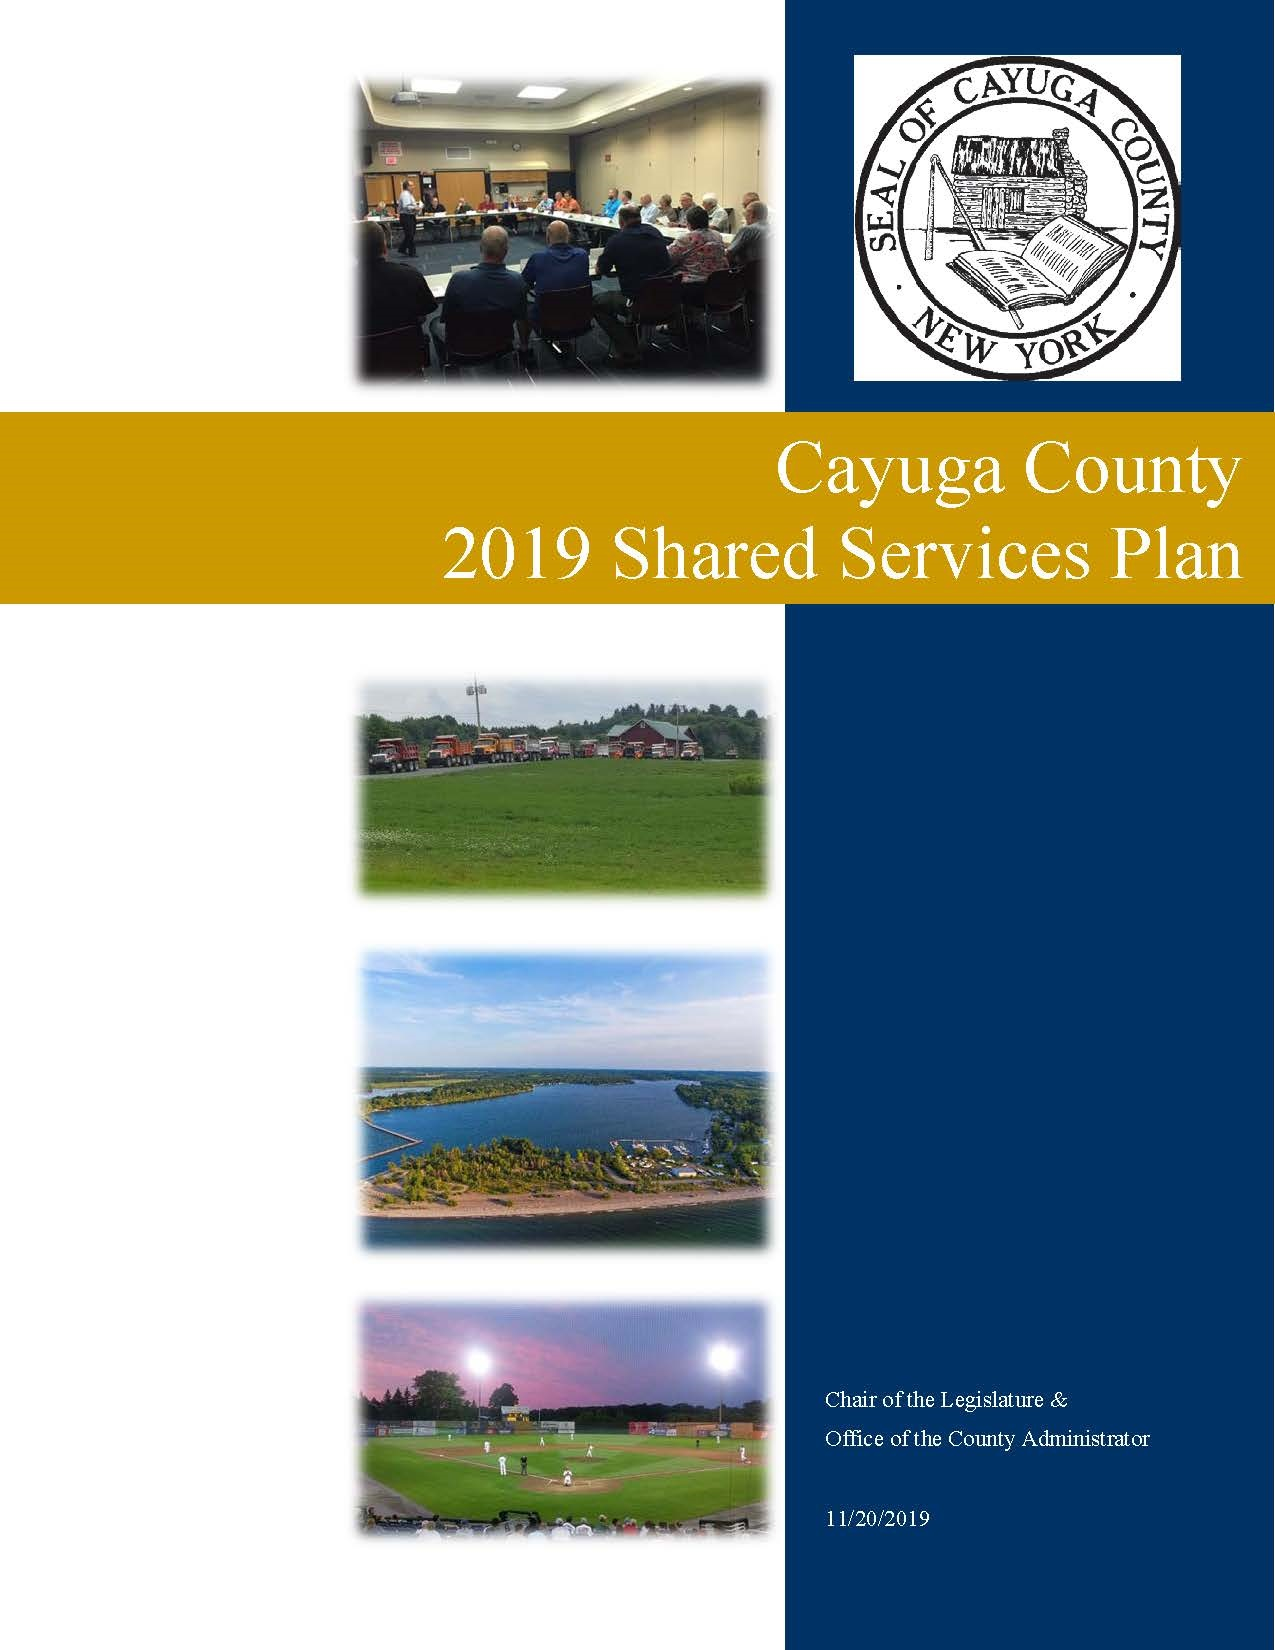 2019 Shared Services Plan Cover